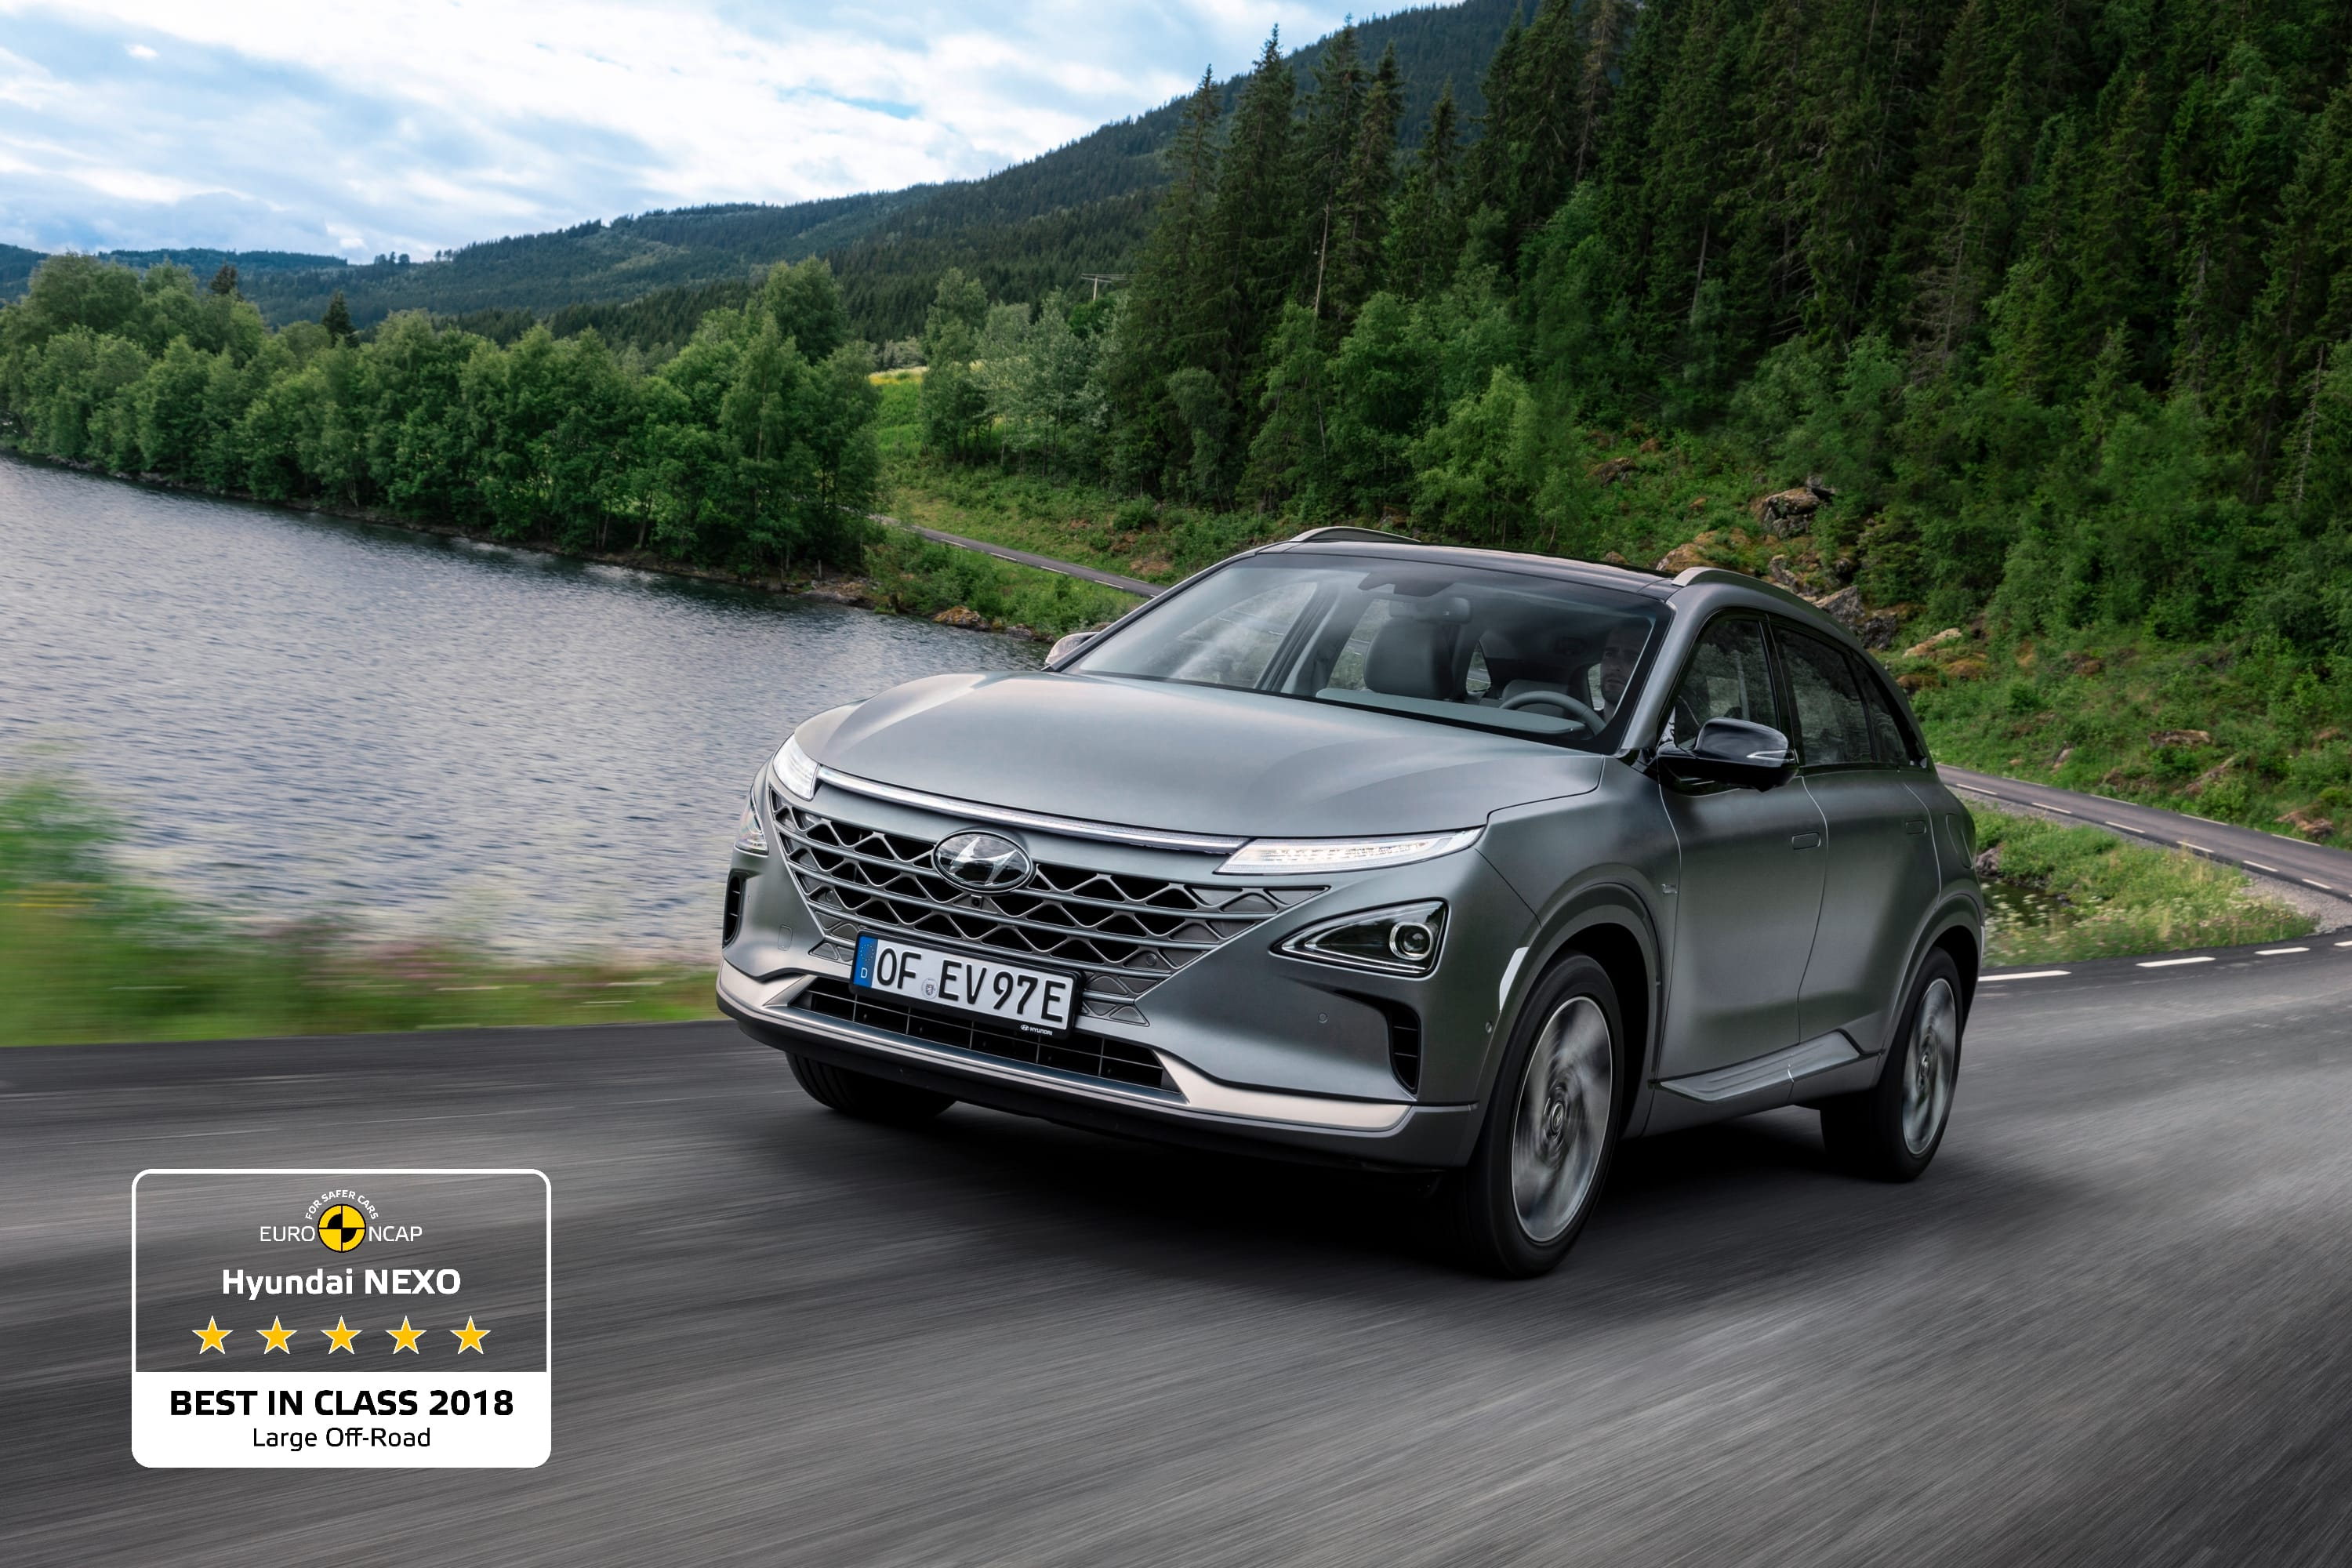 All-New Hyundai NEXO among Euro NCAP's Best in Class Cars of 2018